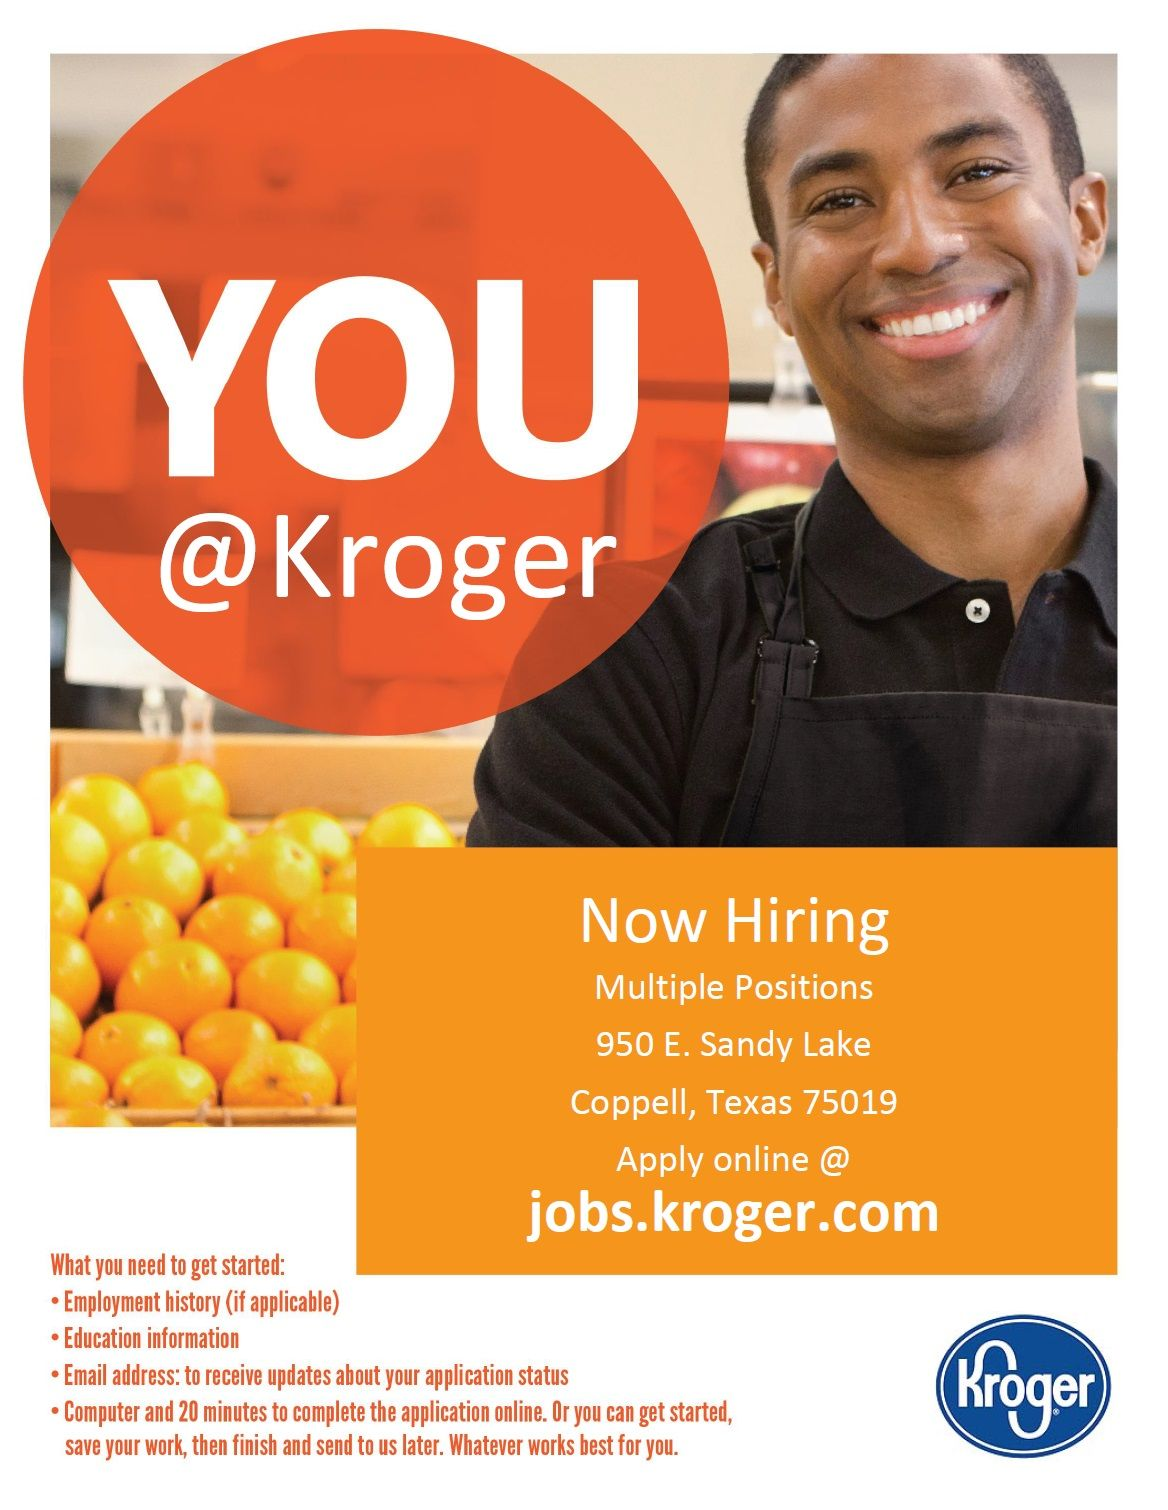 Kroger is hiring in Coppell, TX. Check them out